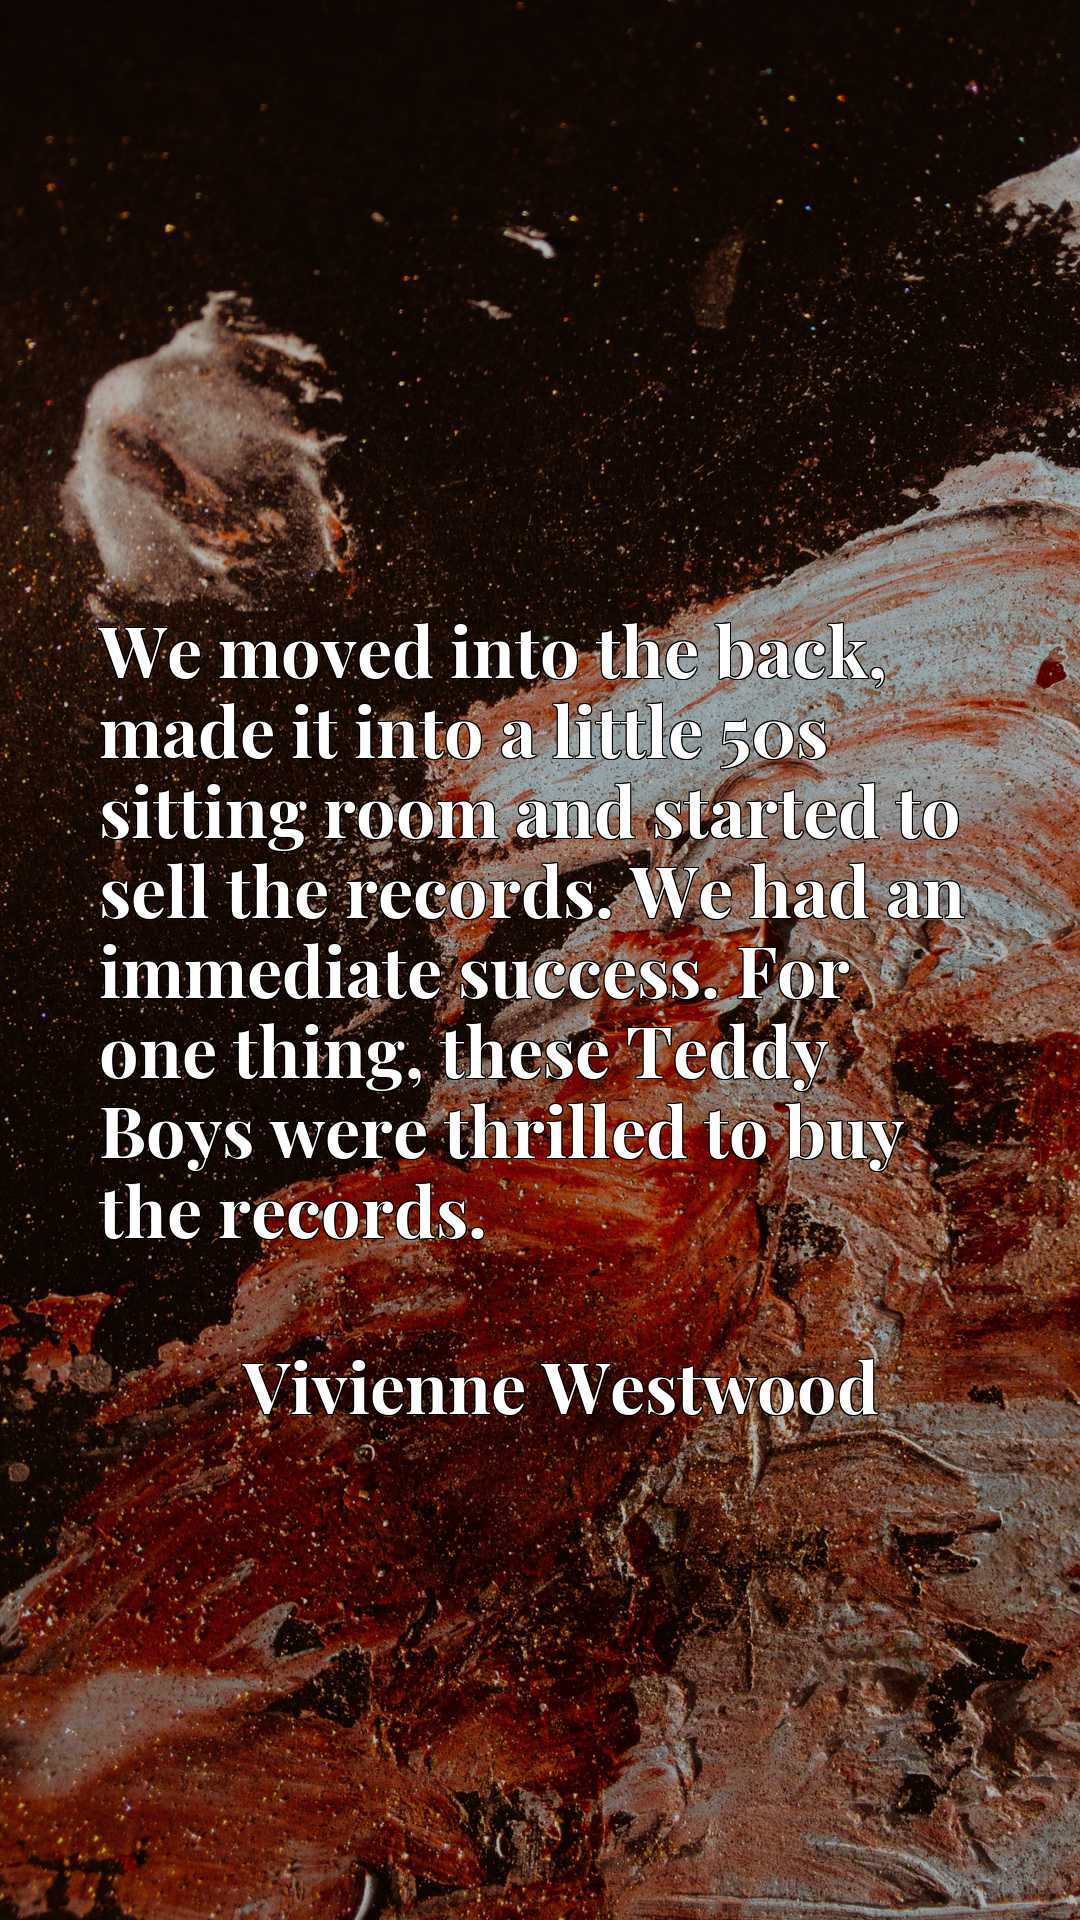 We moved into the back, made it into a little 50s sitting room and started to sell the records. We had an immediate success. For one thing, these Teddy Boys were thrilled to buy the records.